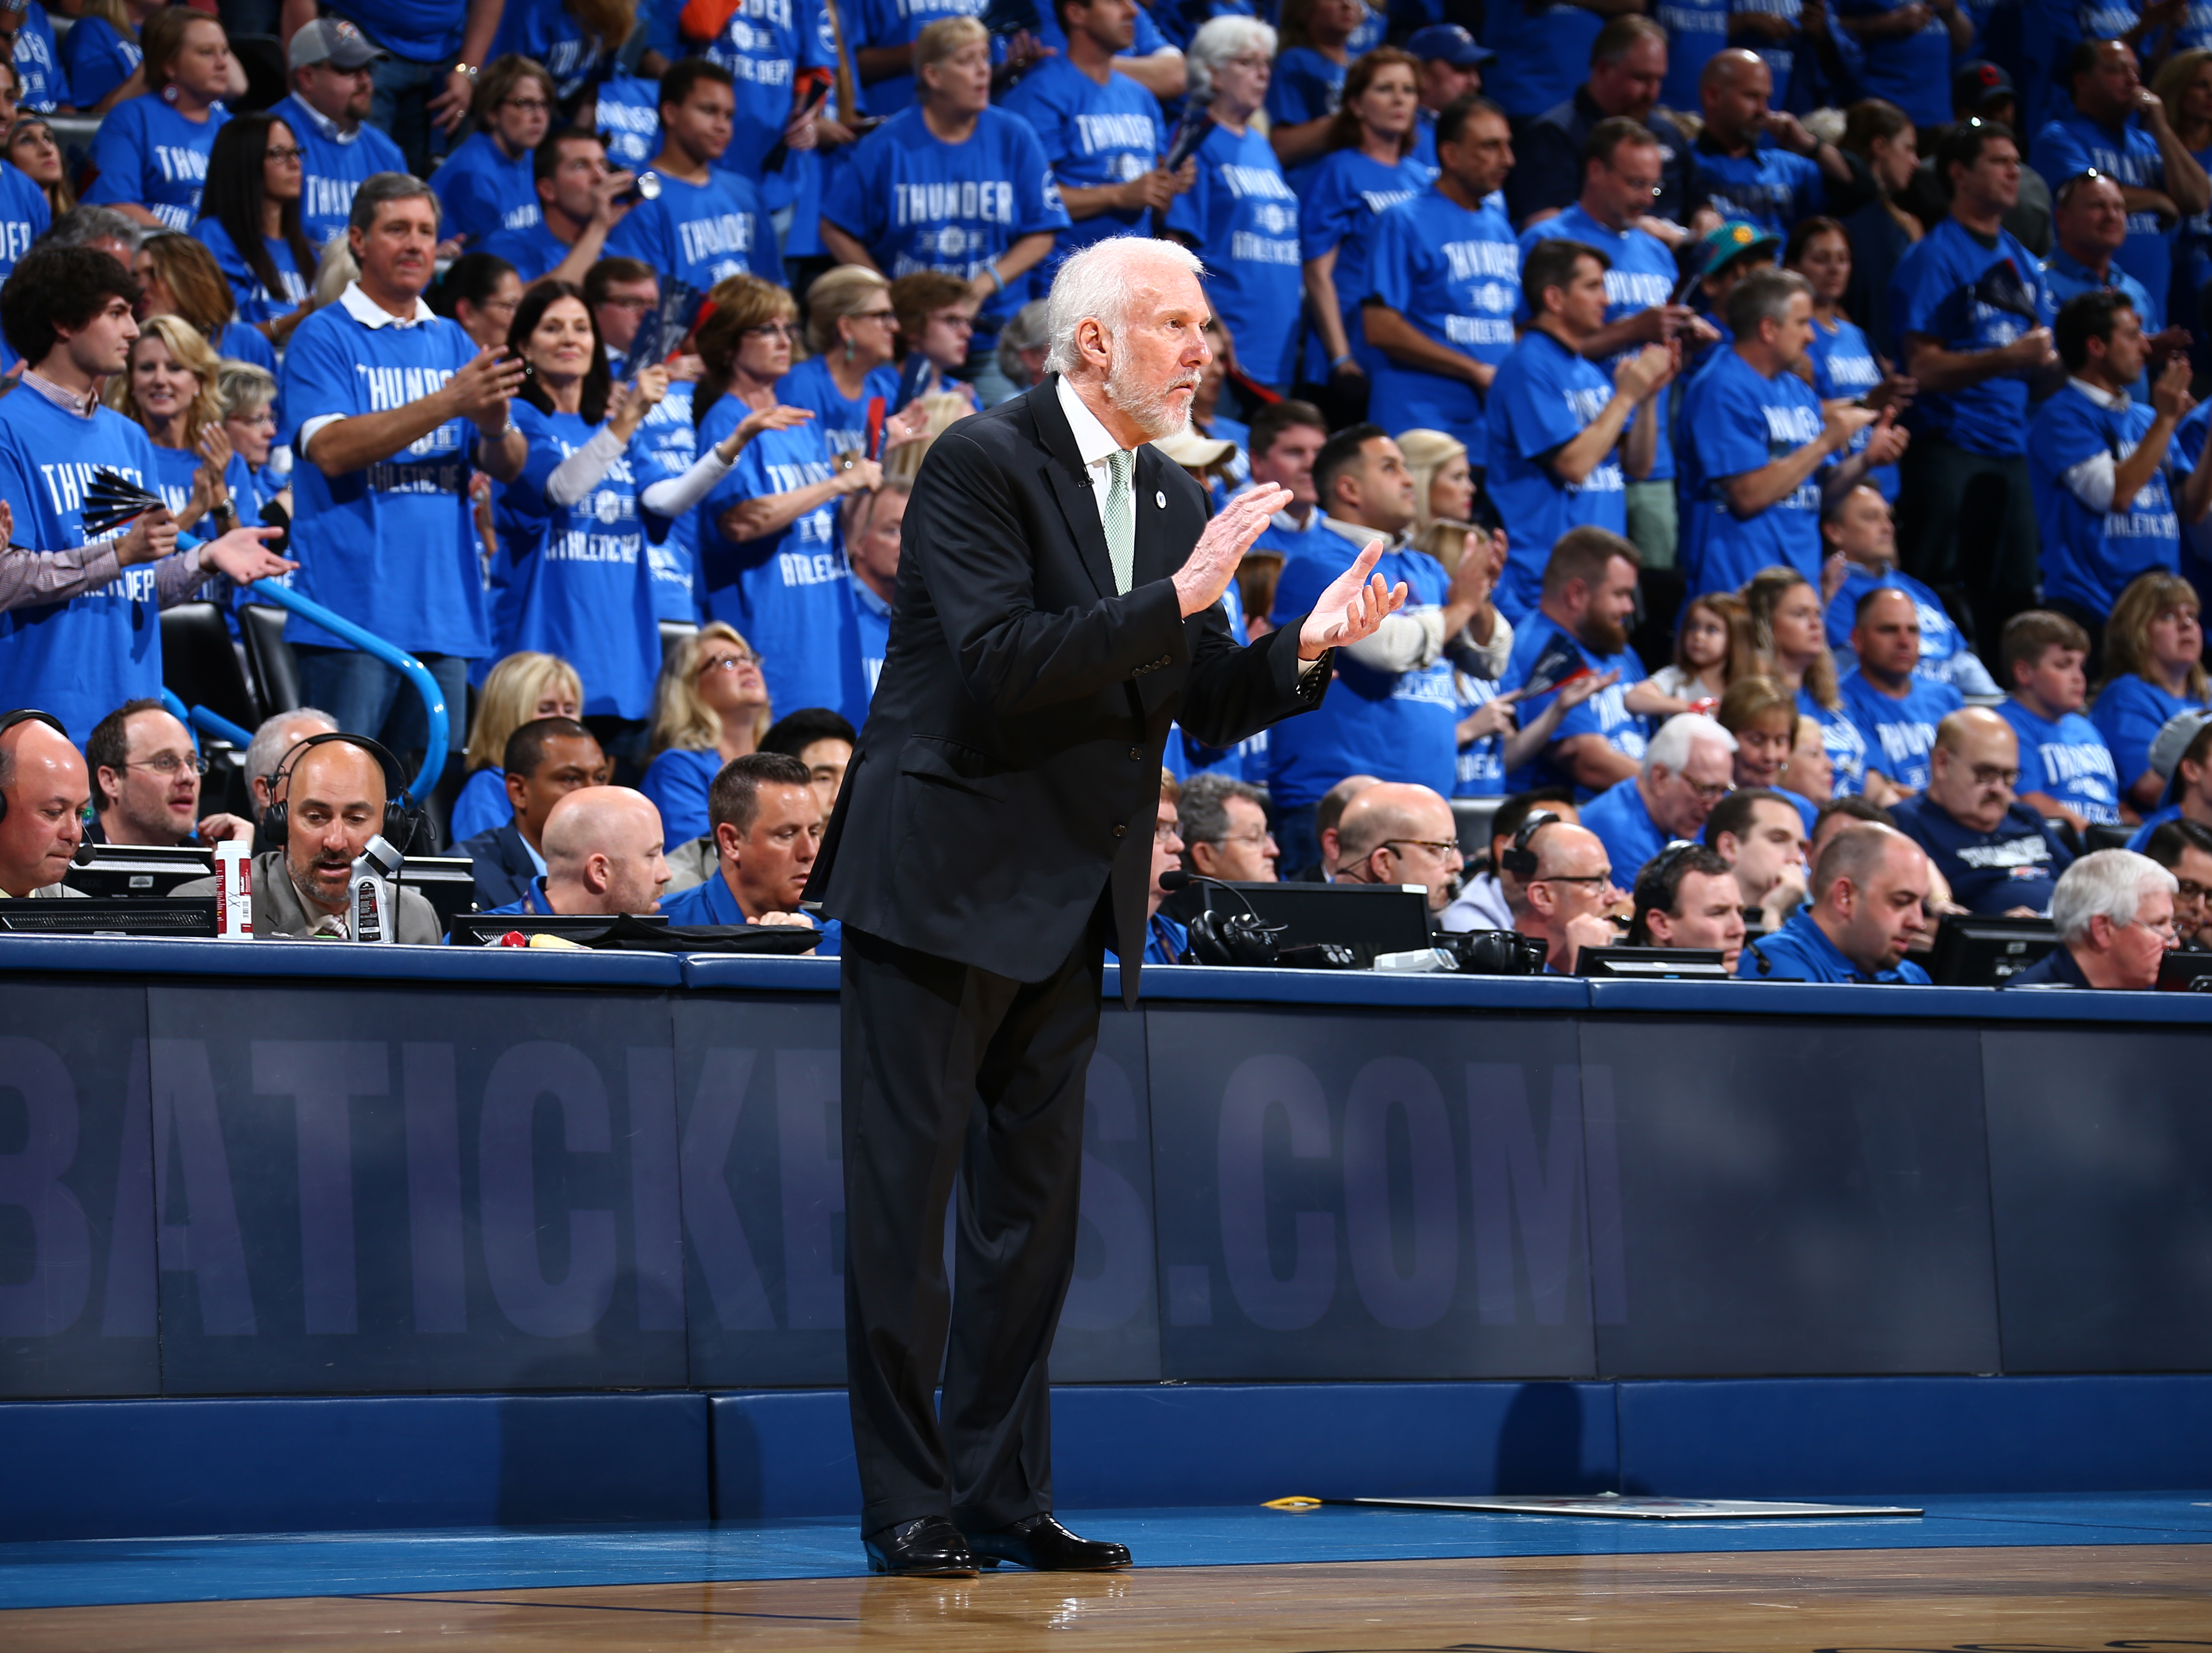 OKLAHOMA CITY, OK- MAY 12:  Head coach Gregg Popovich of the San Antonio Spurs looks on during the game against the Oklahoma City Thunder in Game Six of the Western Conference Semifinals during the 2016 NBA Playoffs on May 12, 2016 at Chesapeake Energy Ar